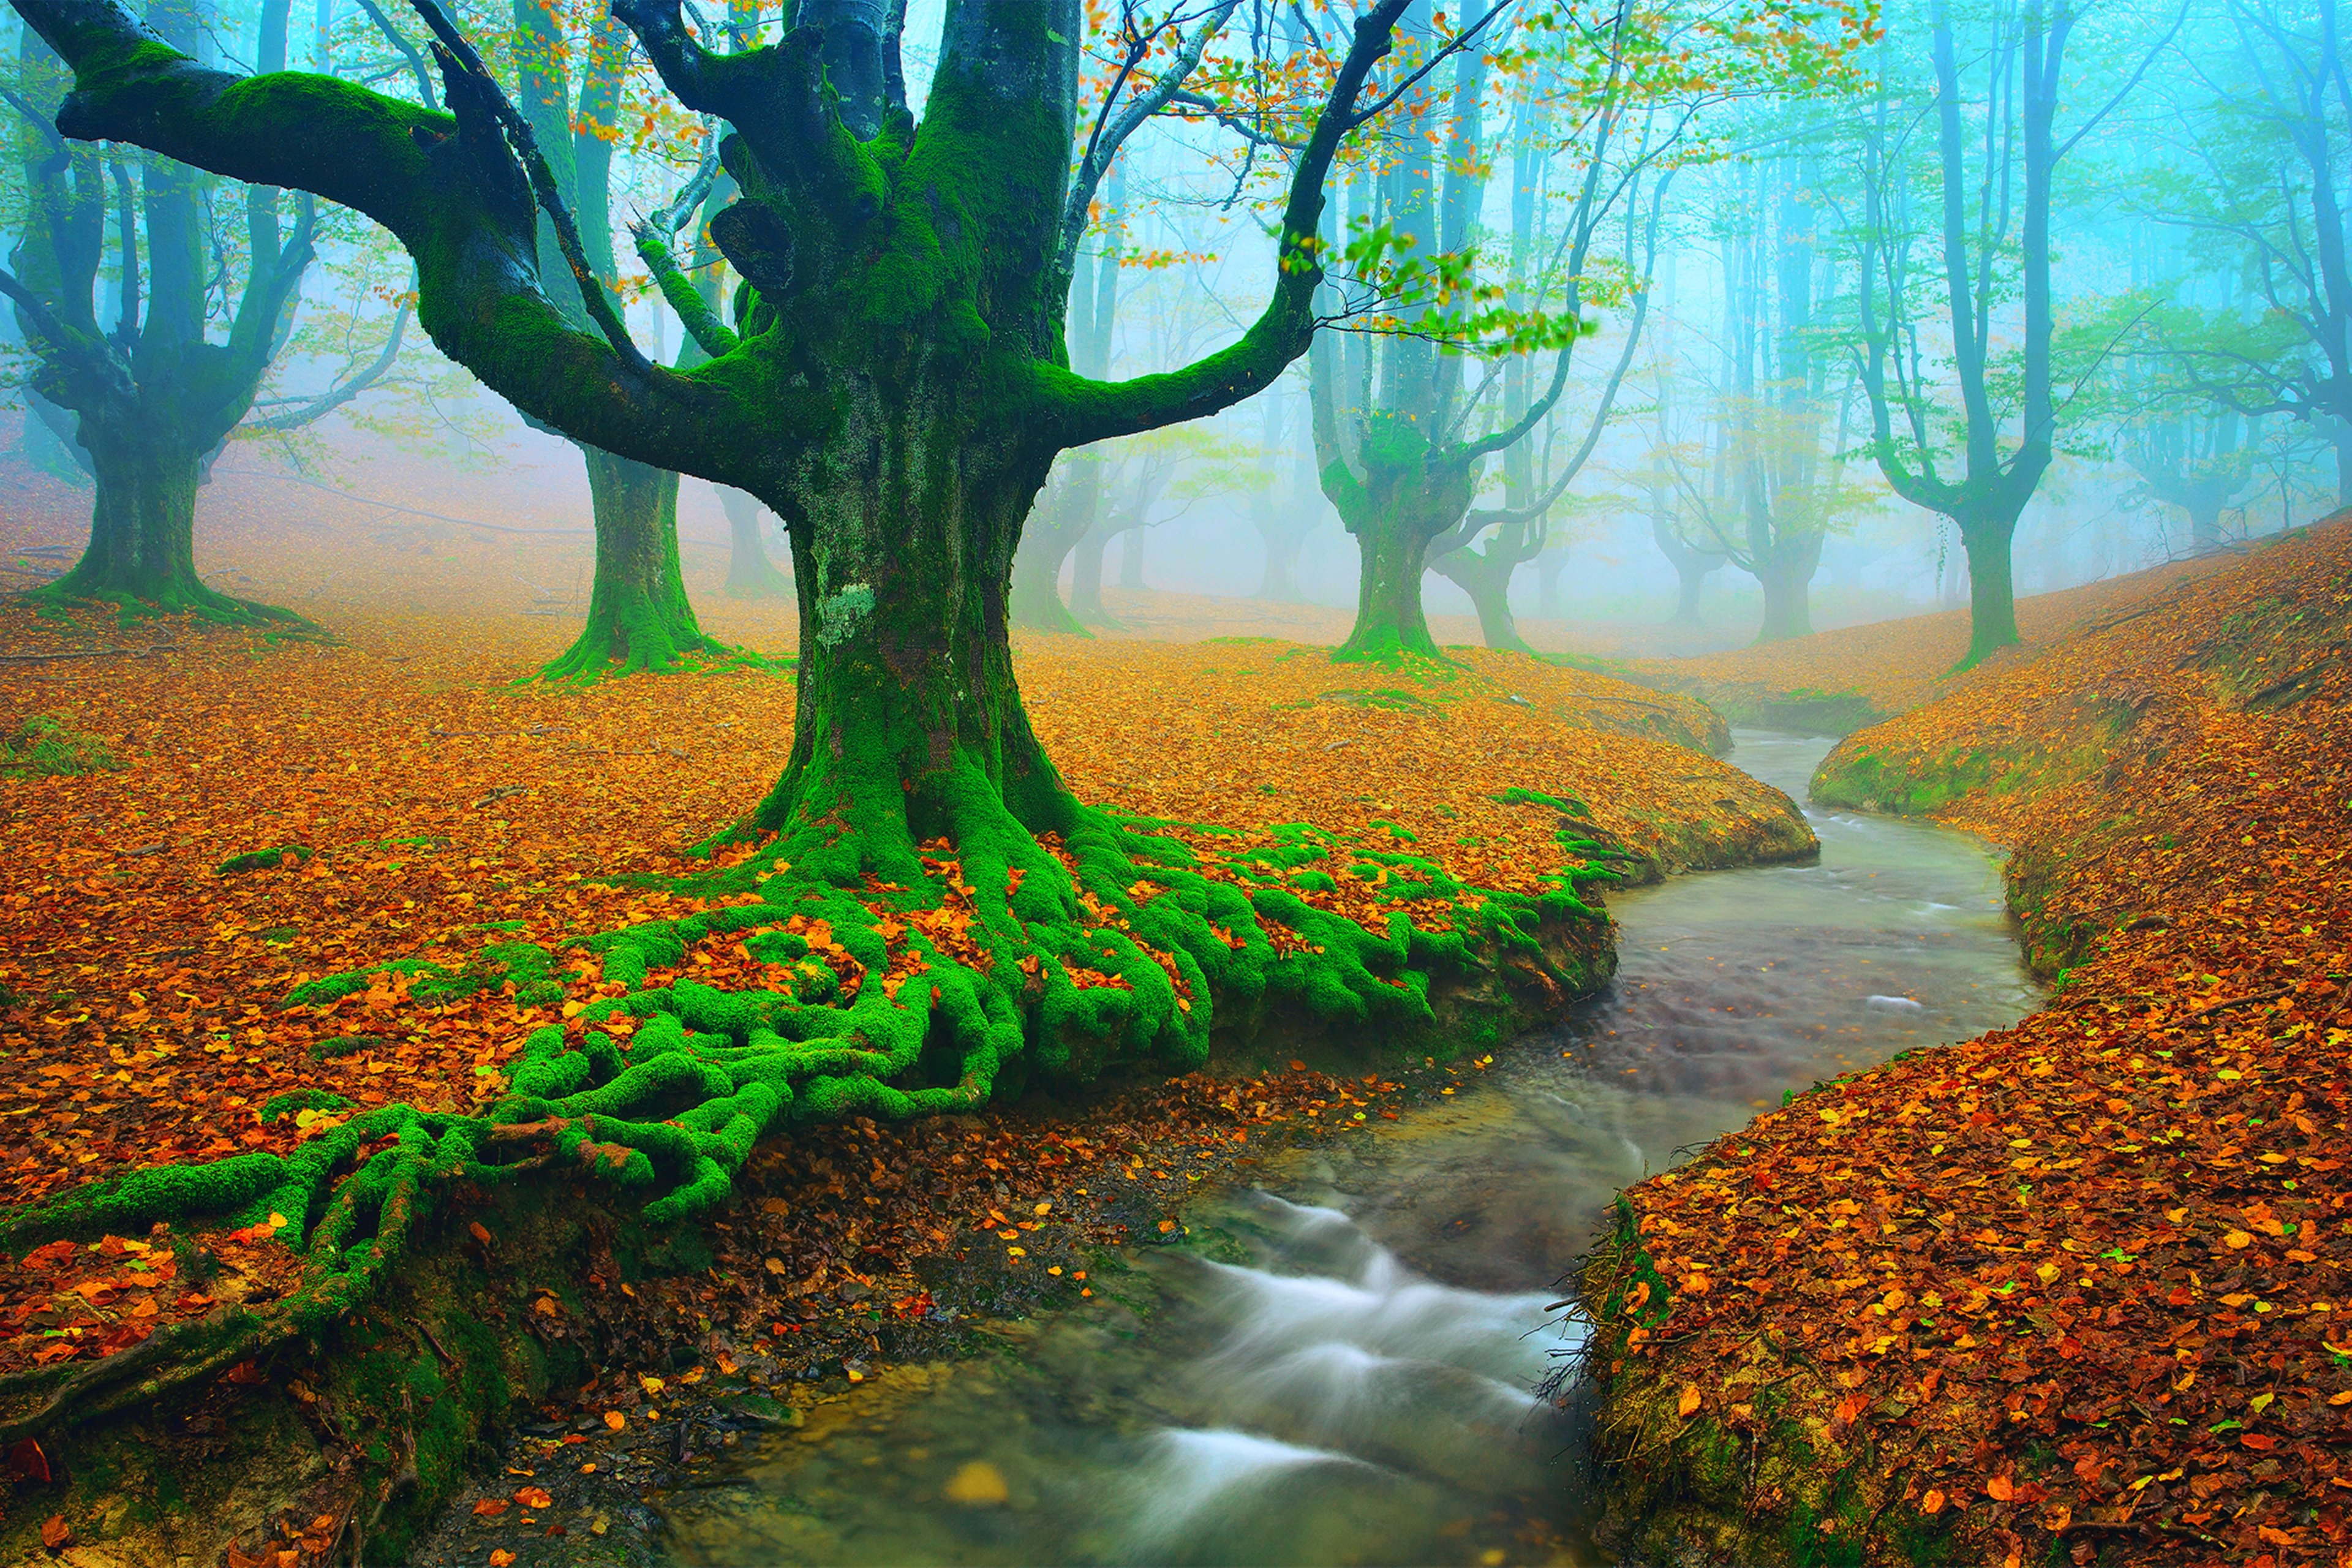 Autumn Spain Rivers Forest Landscape Fog Nature Water Trees Wallpaper 3840x2560 622540